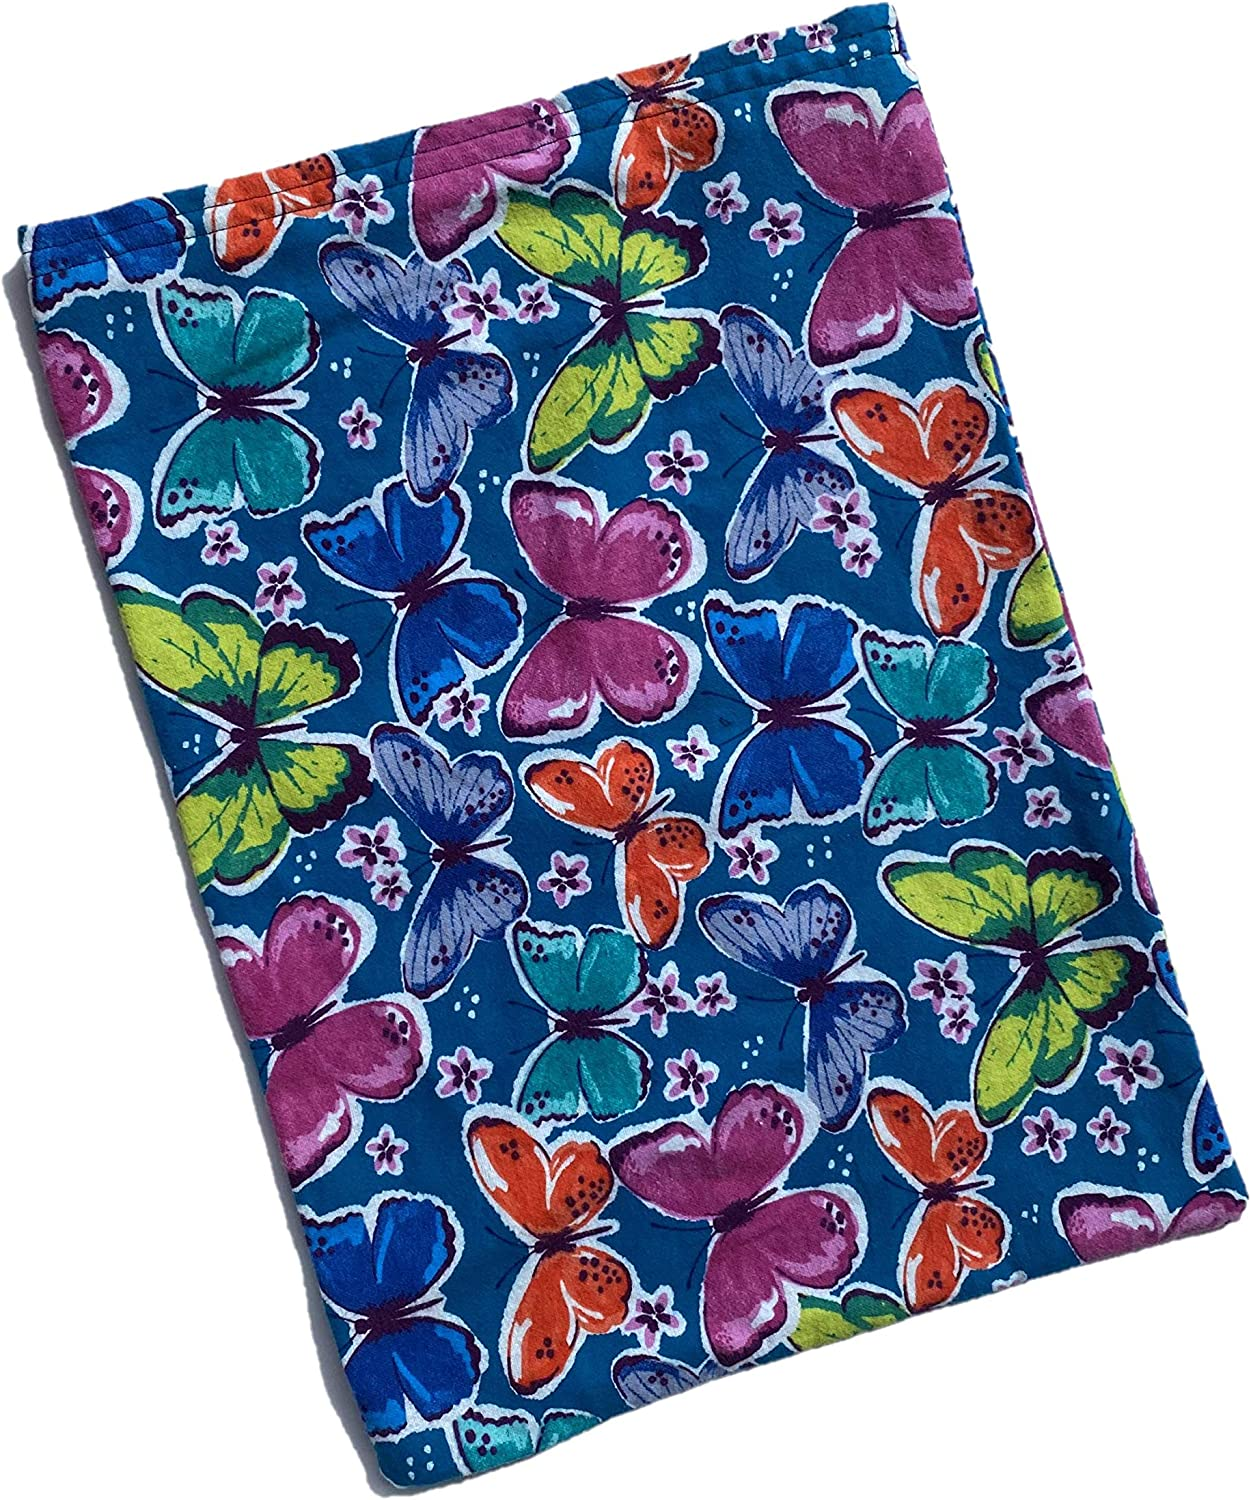 Heating Pad Replacement Cover, Fits 12 X 15 Electric Heating Pads Cotton Flannel (Teal Butterflies)